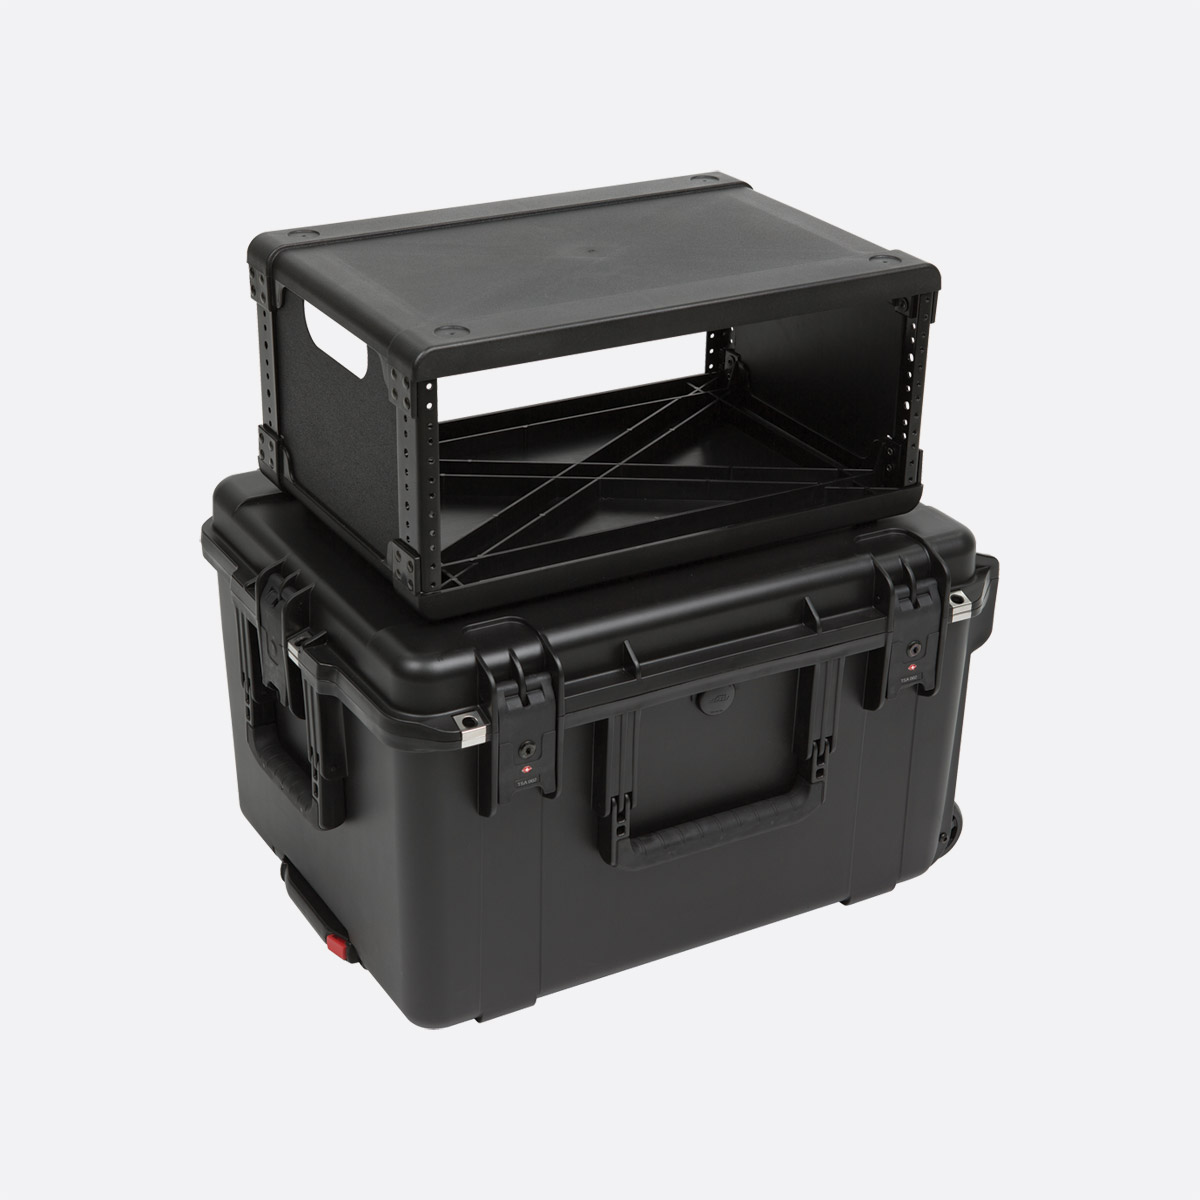 SKB 3i-2217M124U ISERIES FLY RACK CASE 4U, 19-inch, internal cage  dimensions 330x483x178mm, black